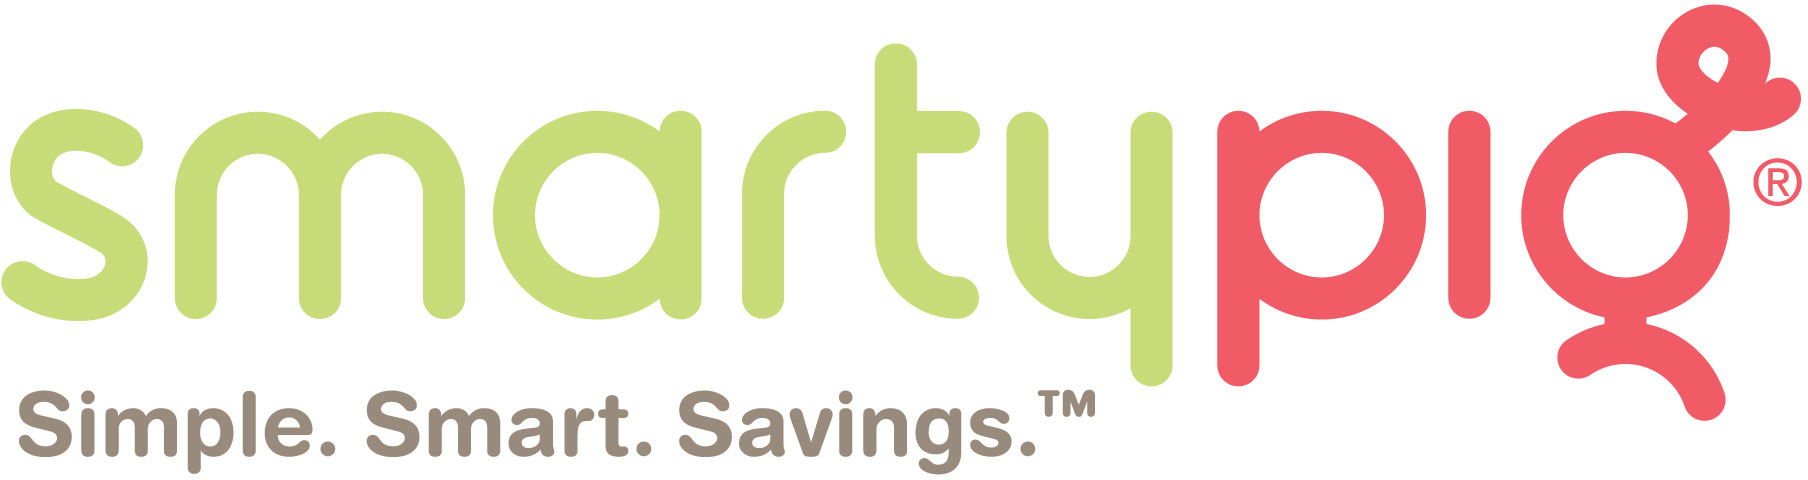 printlogo lg Smart Saving With SmartyPig